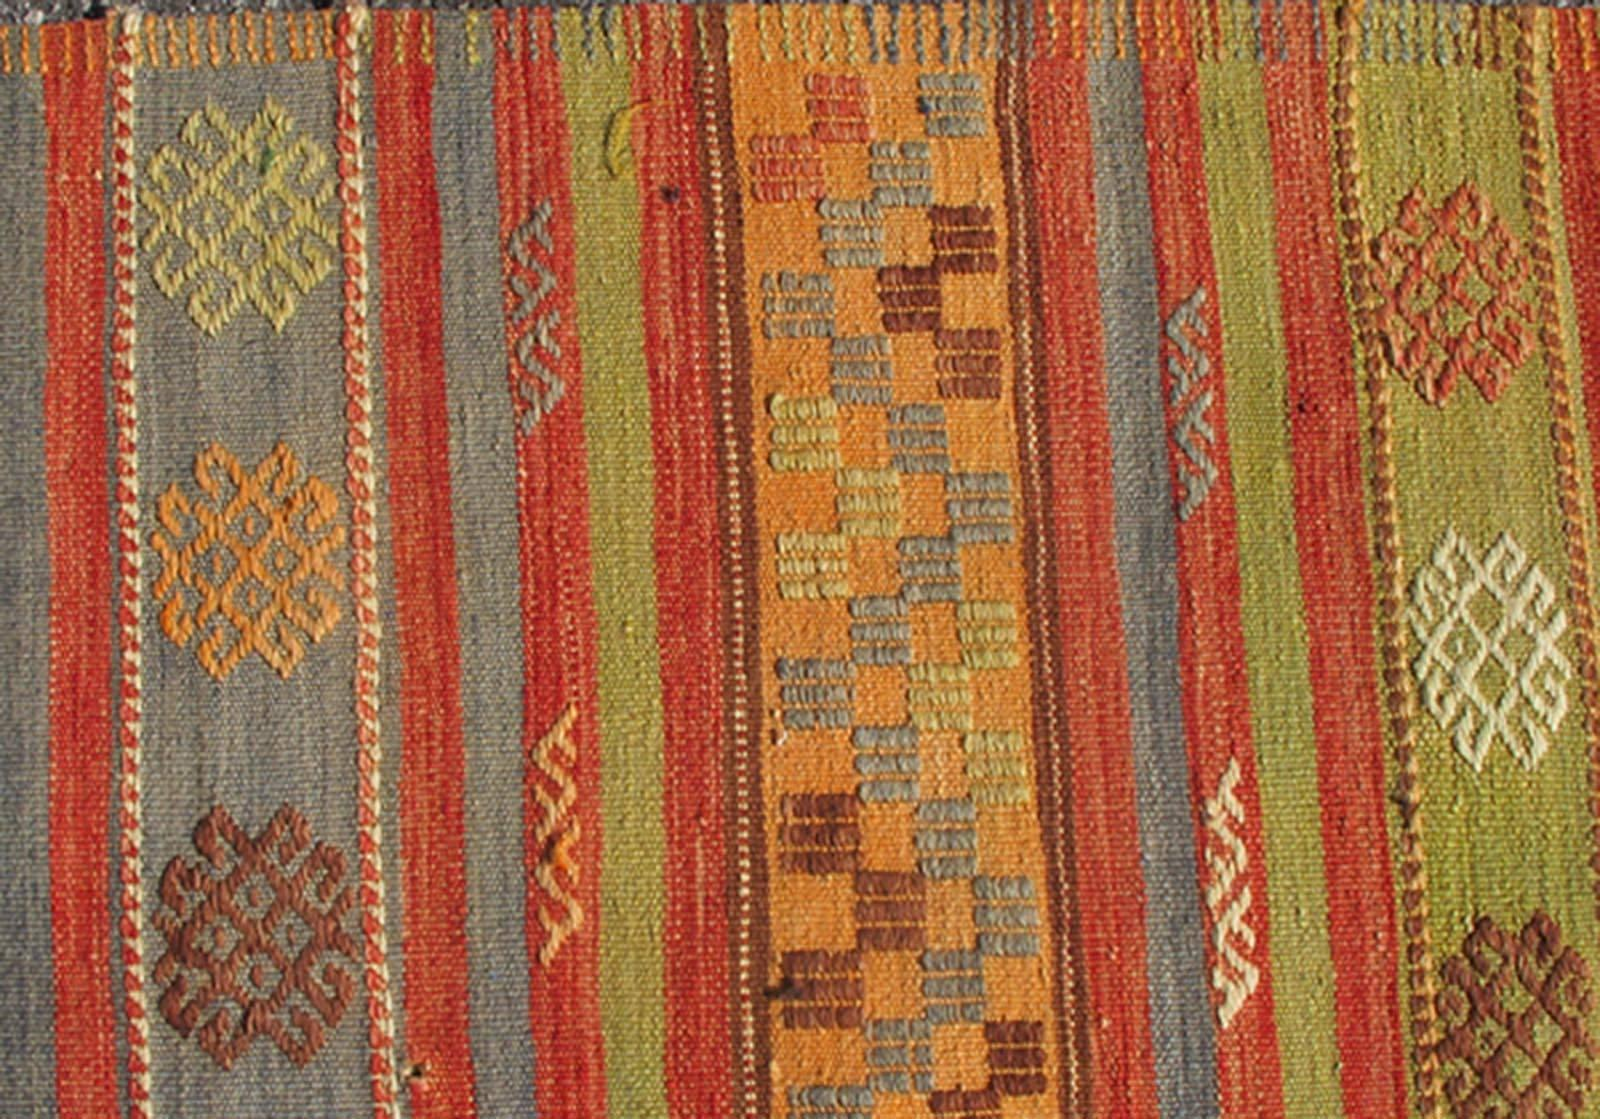 Multicolored Vintage Turkish Kilim Rug With Geometric